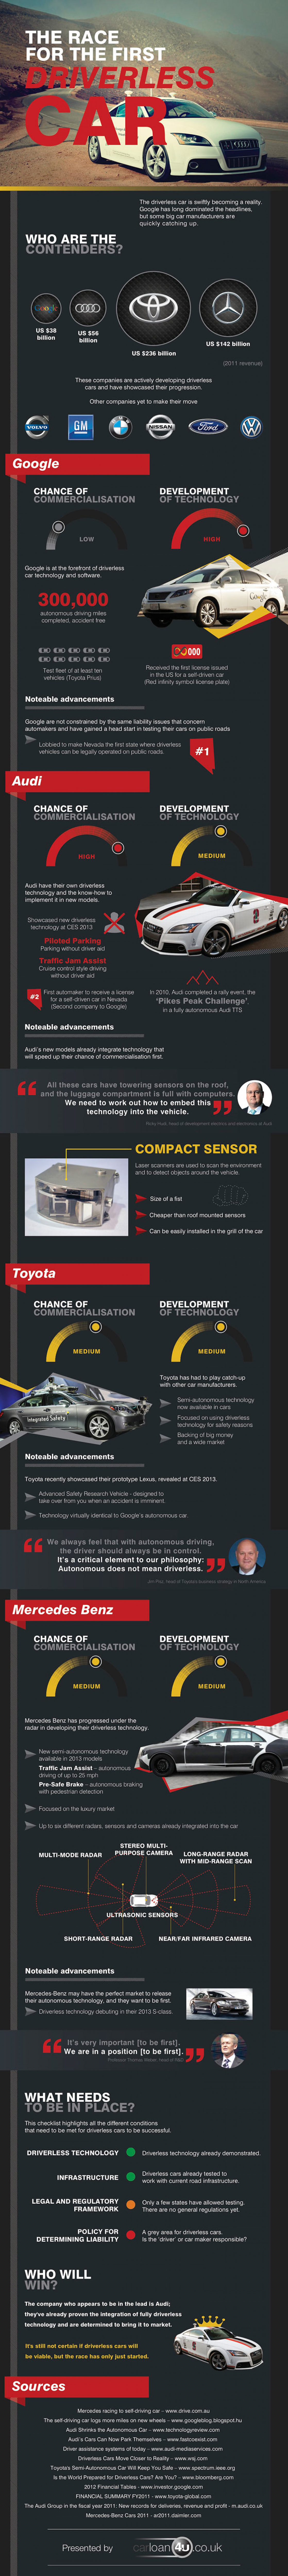 The Race for the First Driverless Car Infographic